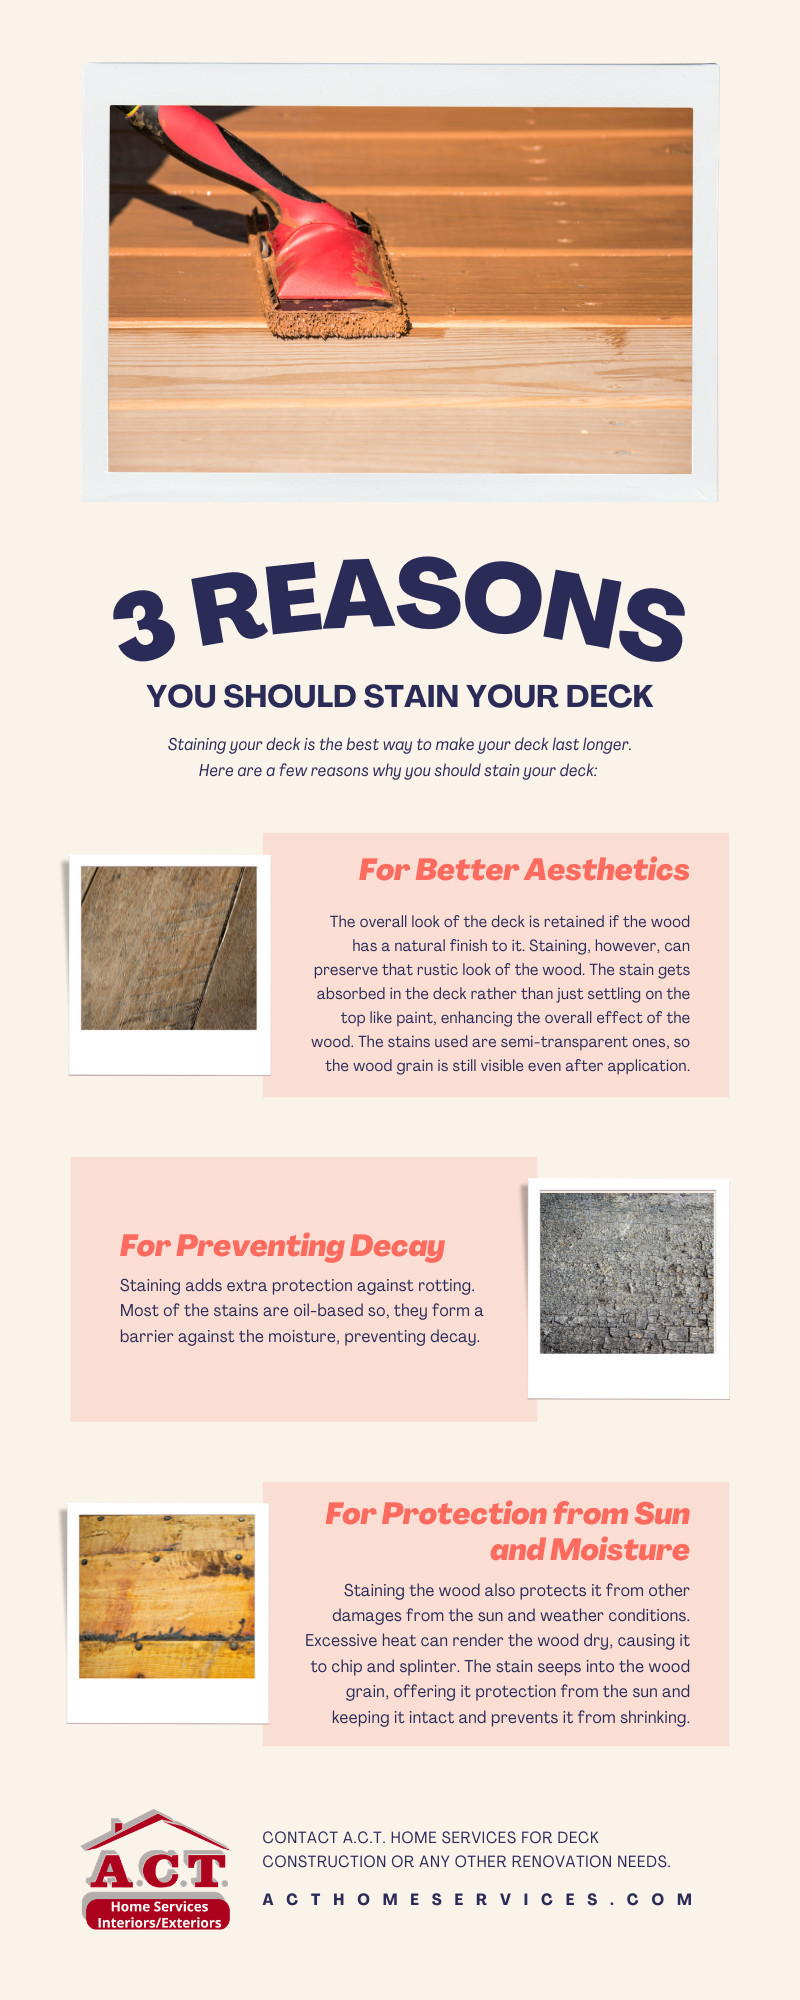 Reasons You Should Stain Your Deck